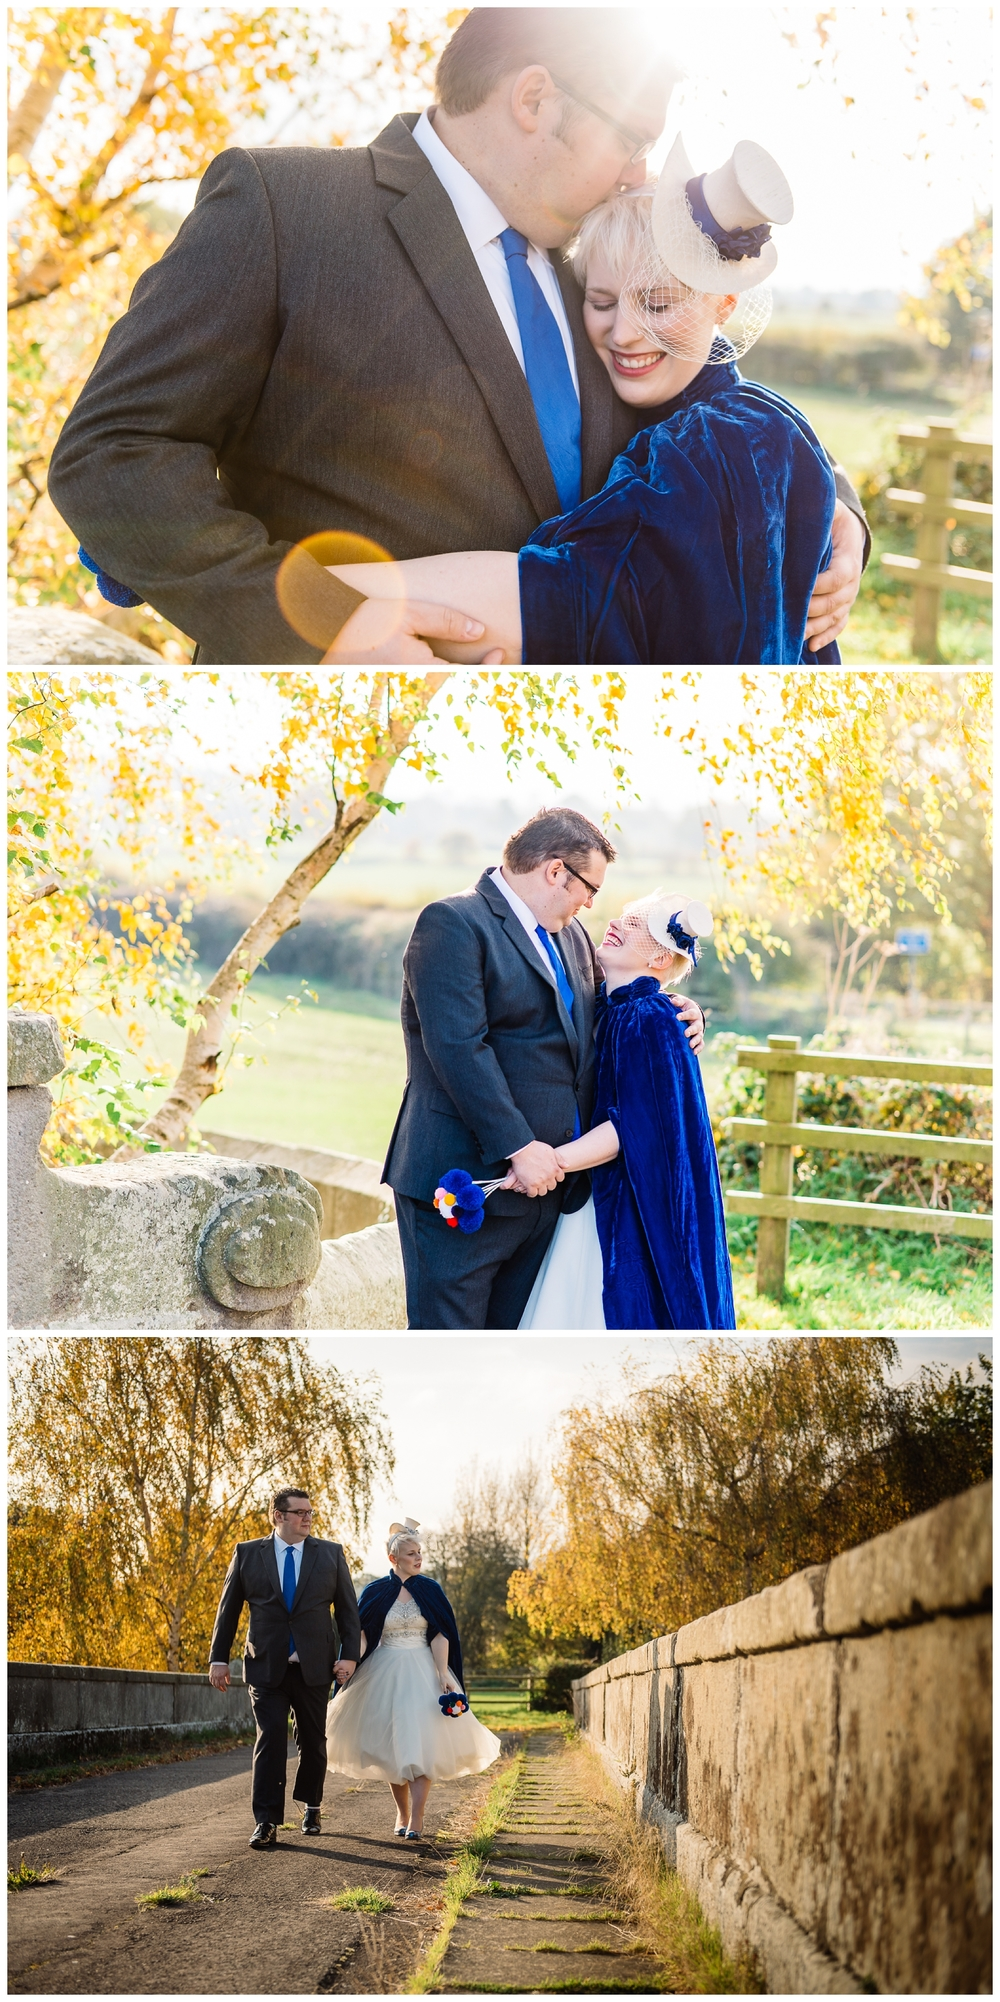 Nikki-Cooper-Photography-Autumn-Wedding-Shrewsbury_0022.jpg